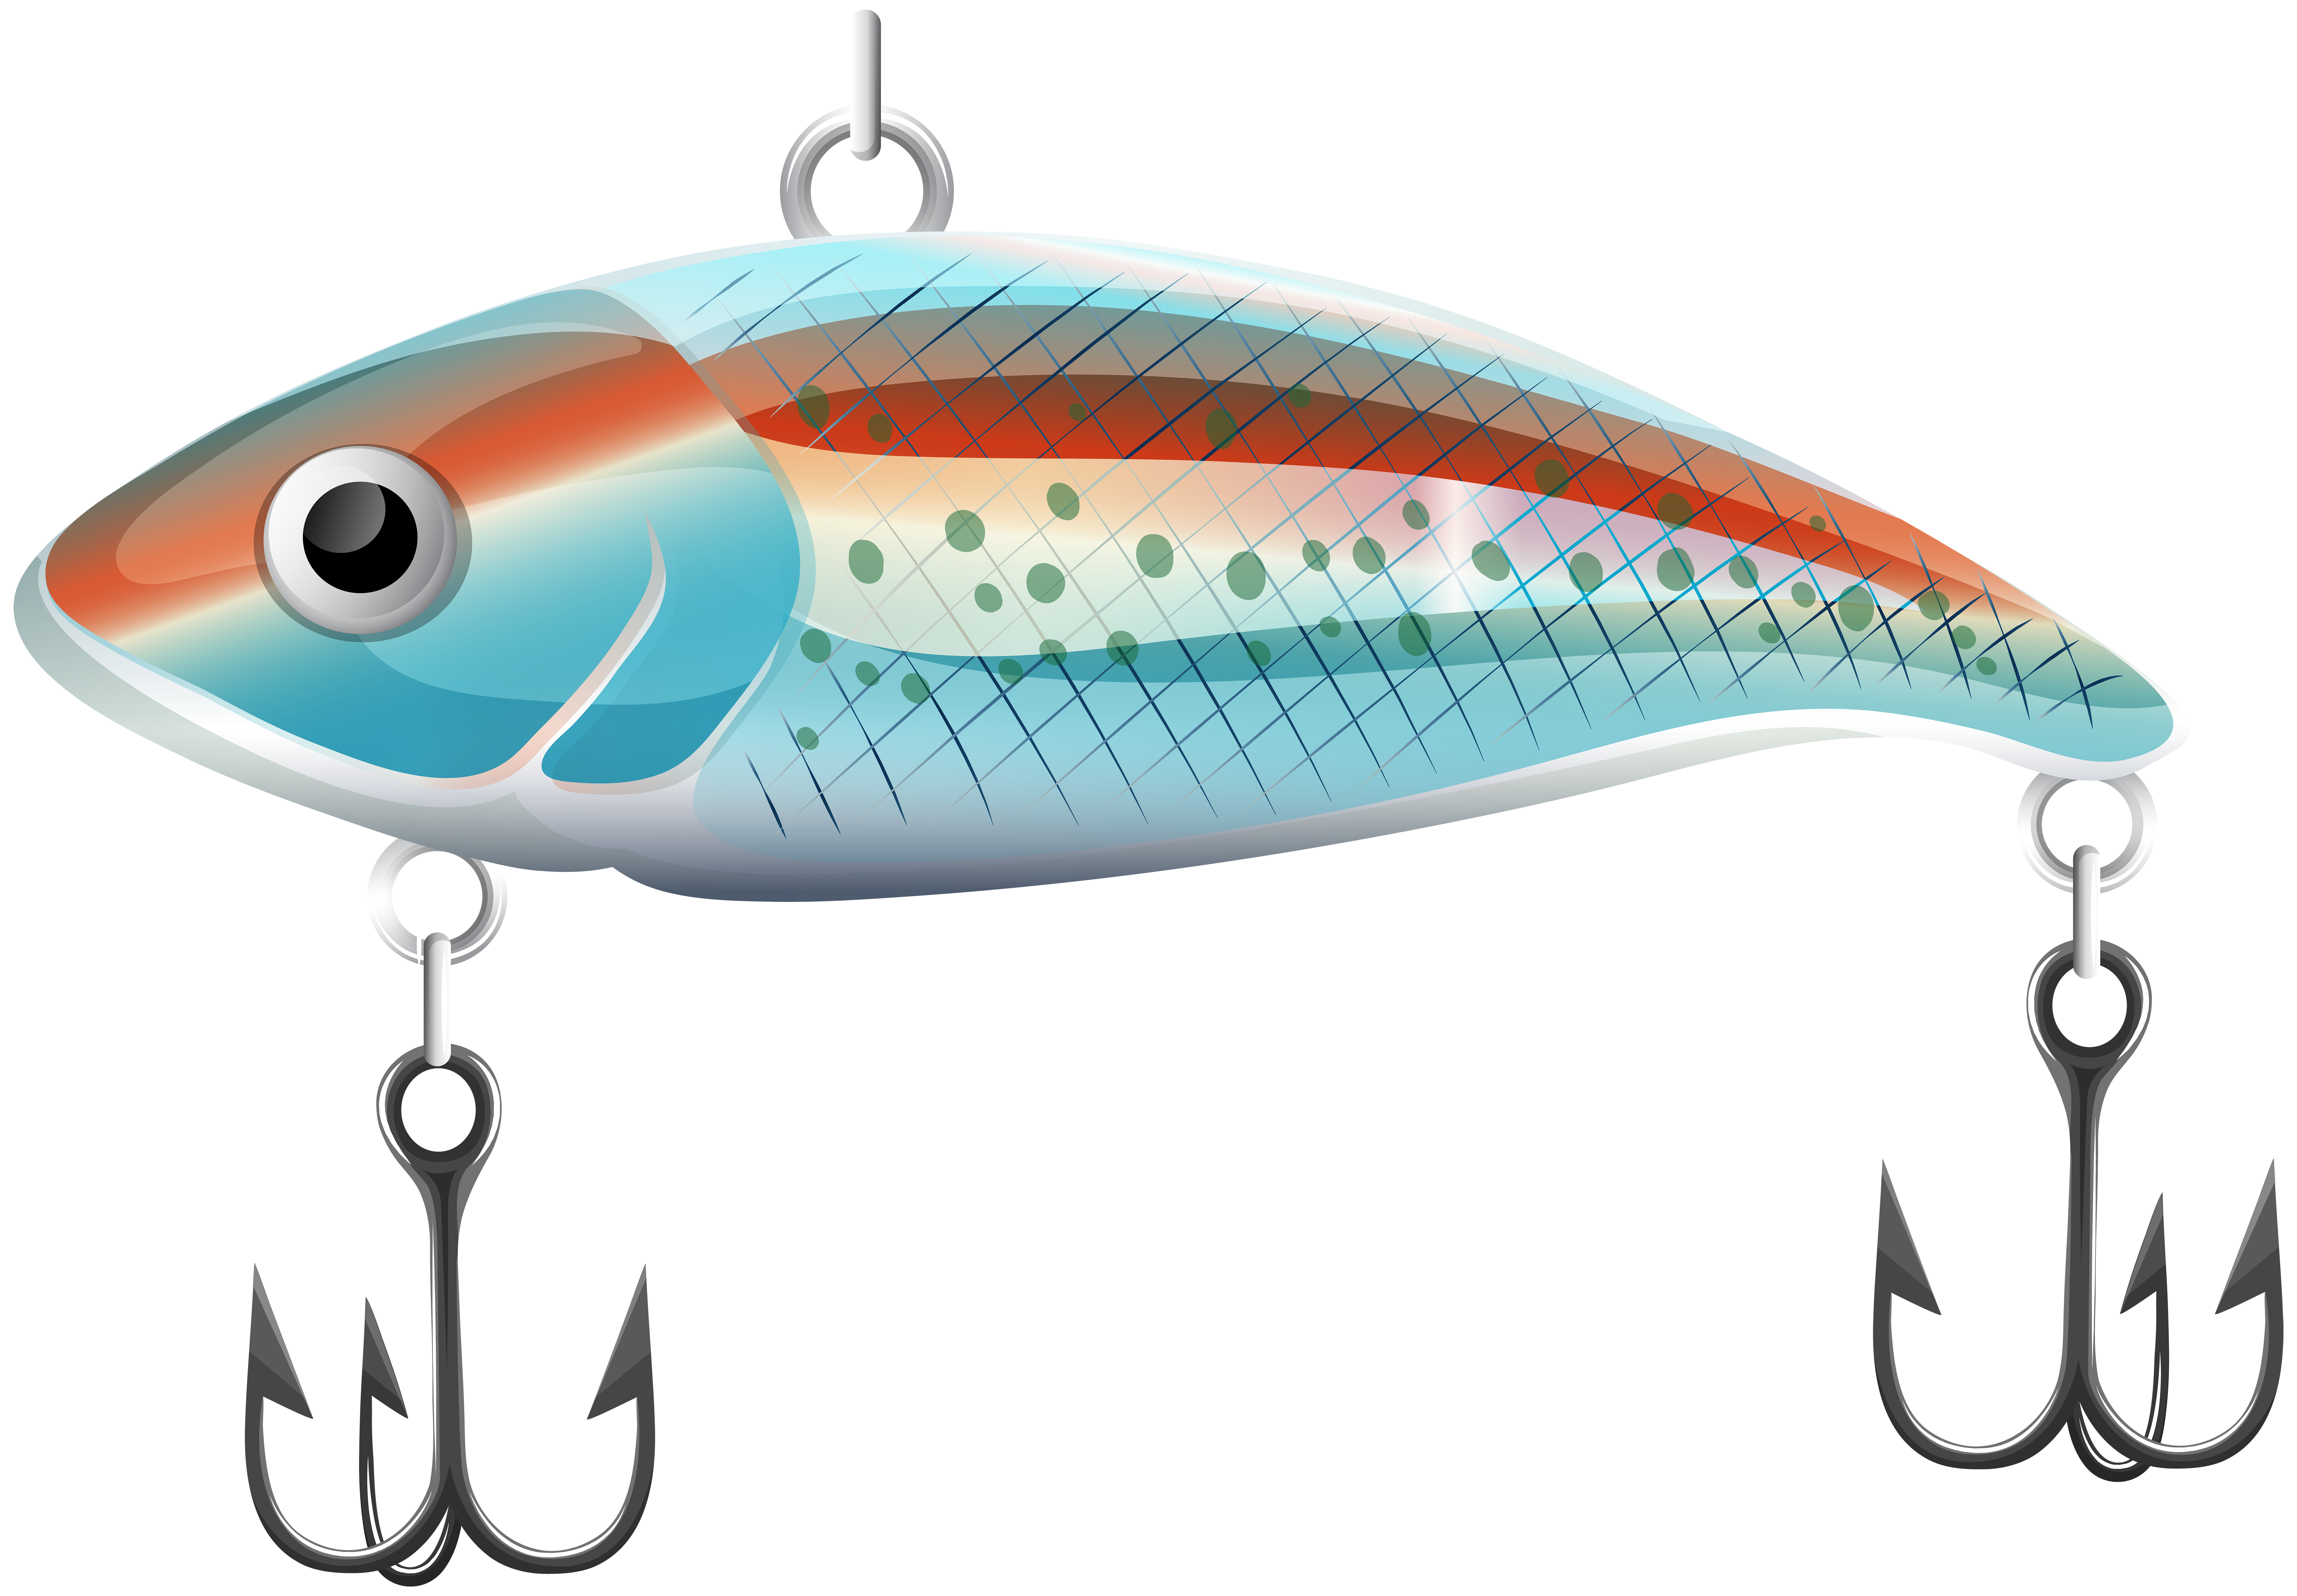 Fish clipart teal. Fishing bait png clip